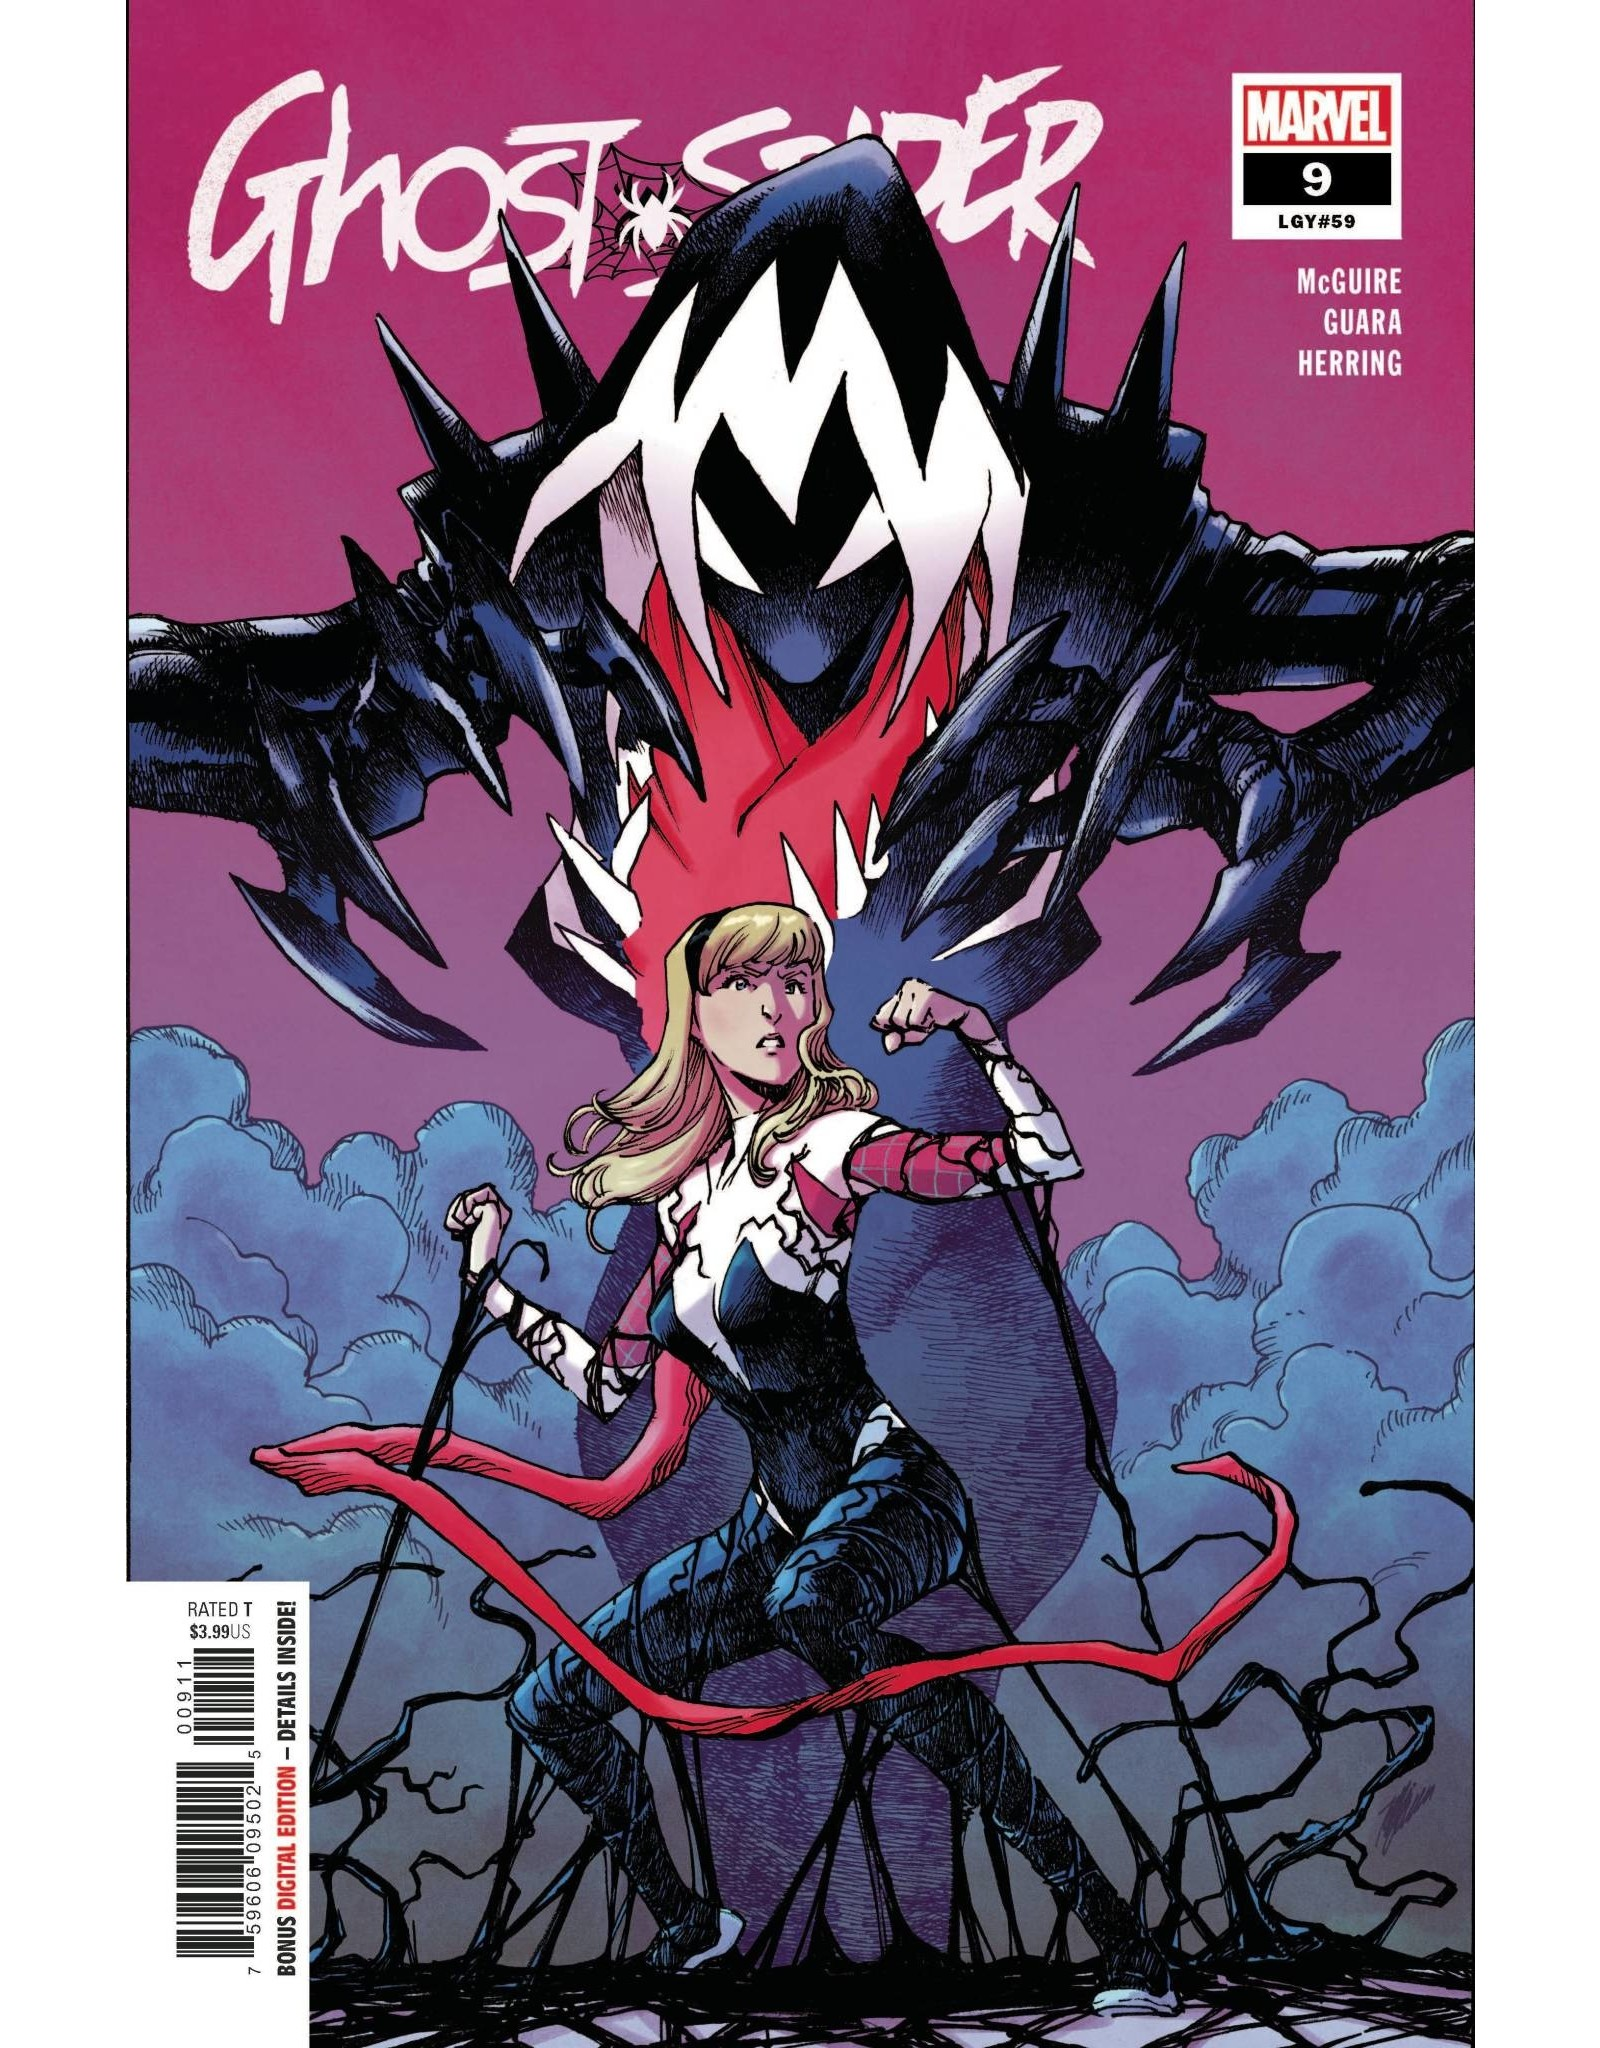 MARVEL COMICS GHOST-SPIDER #9